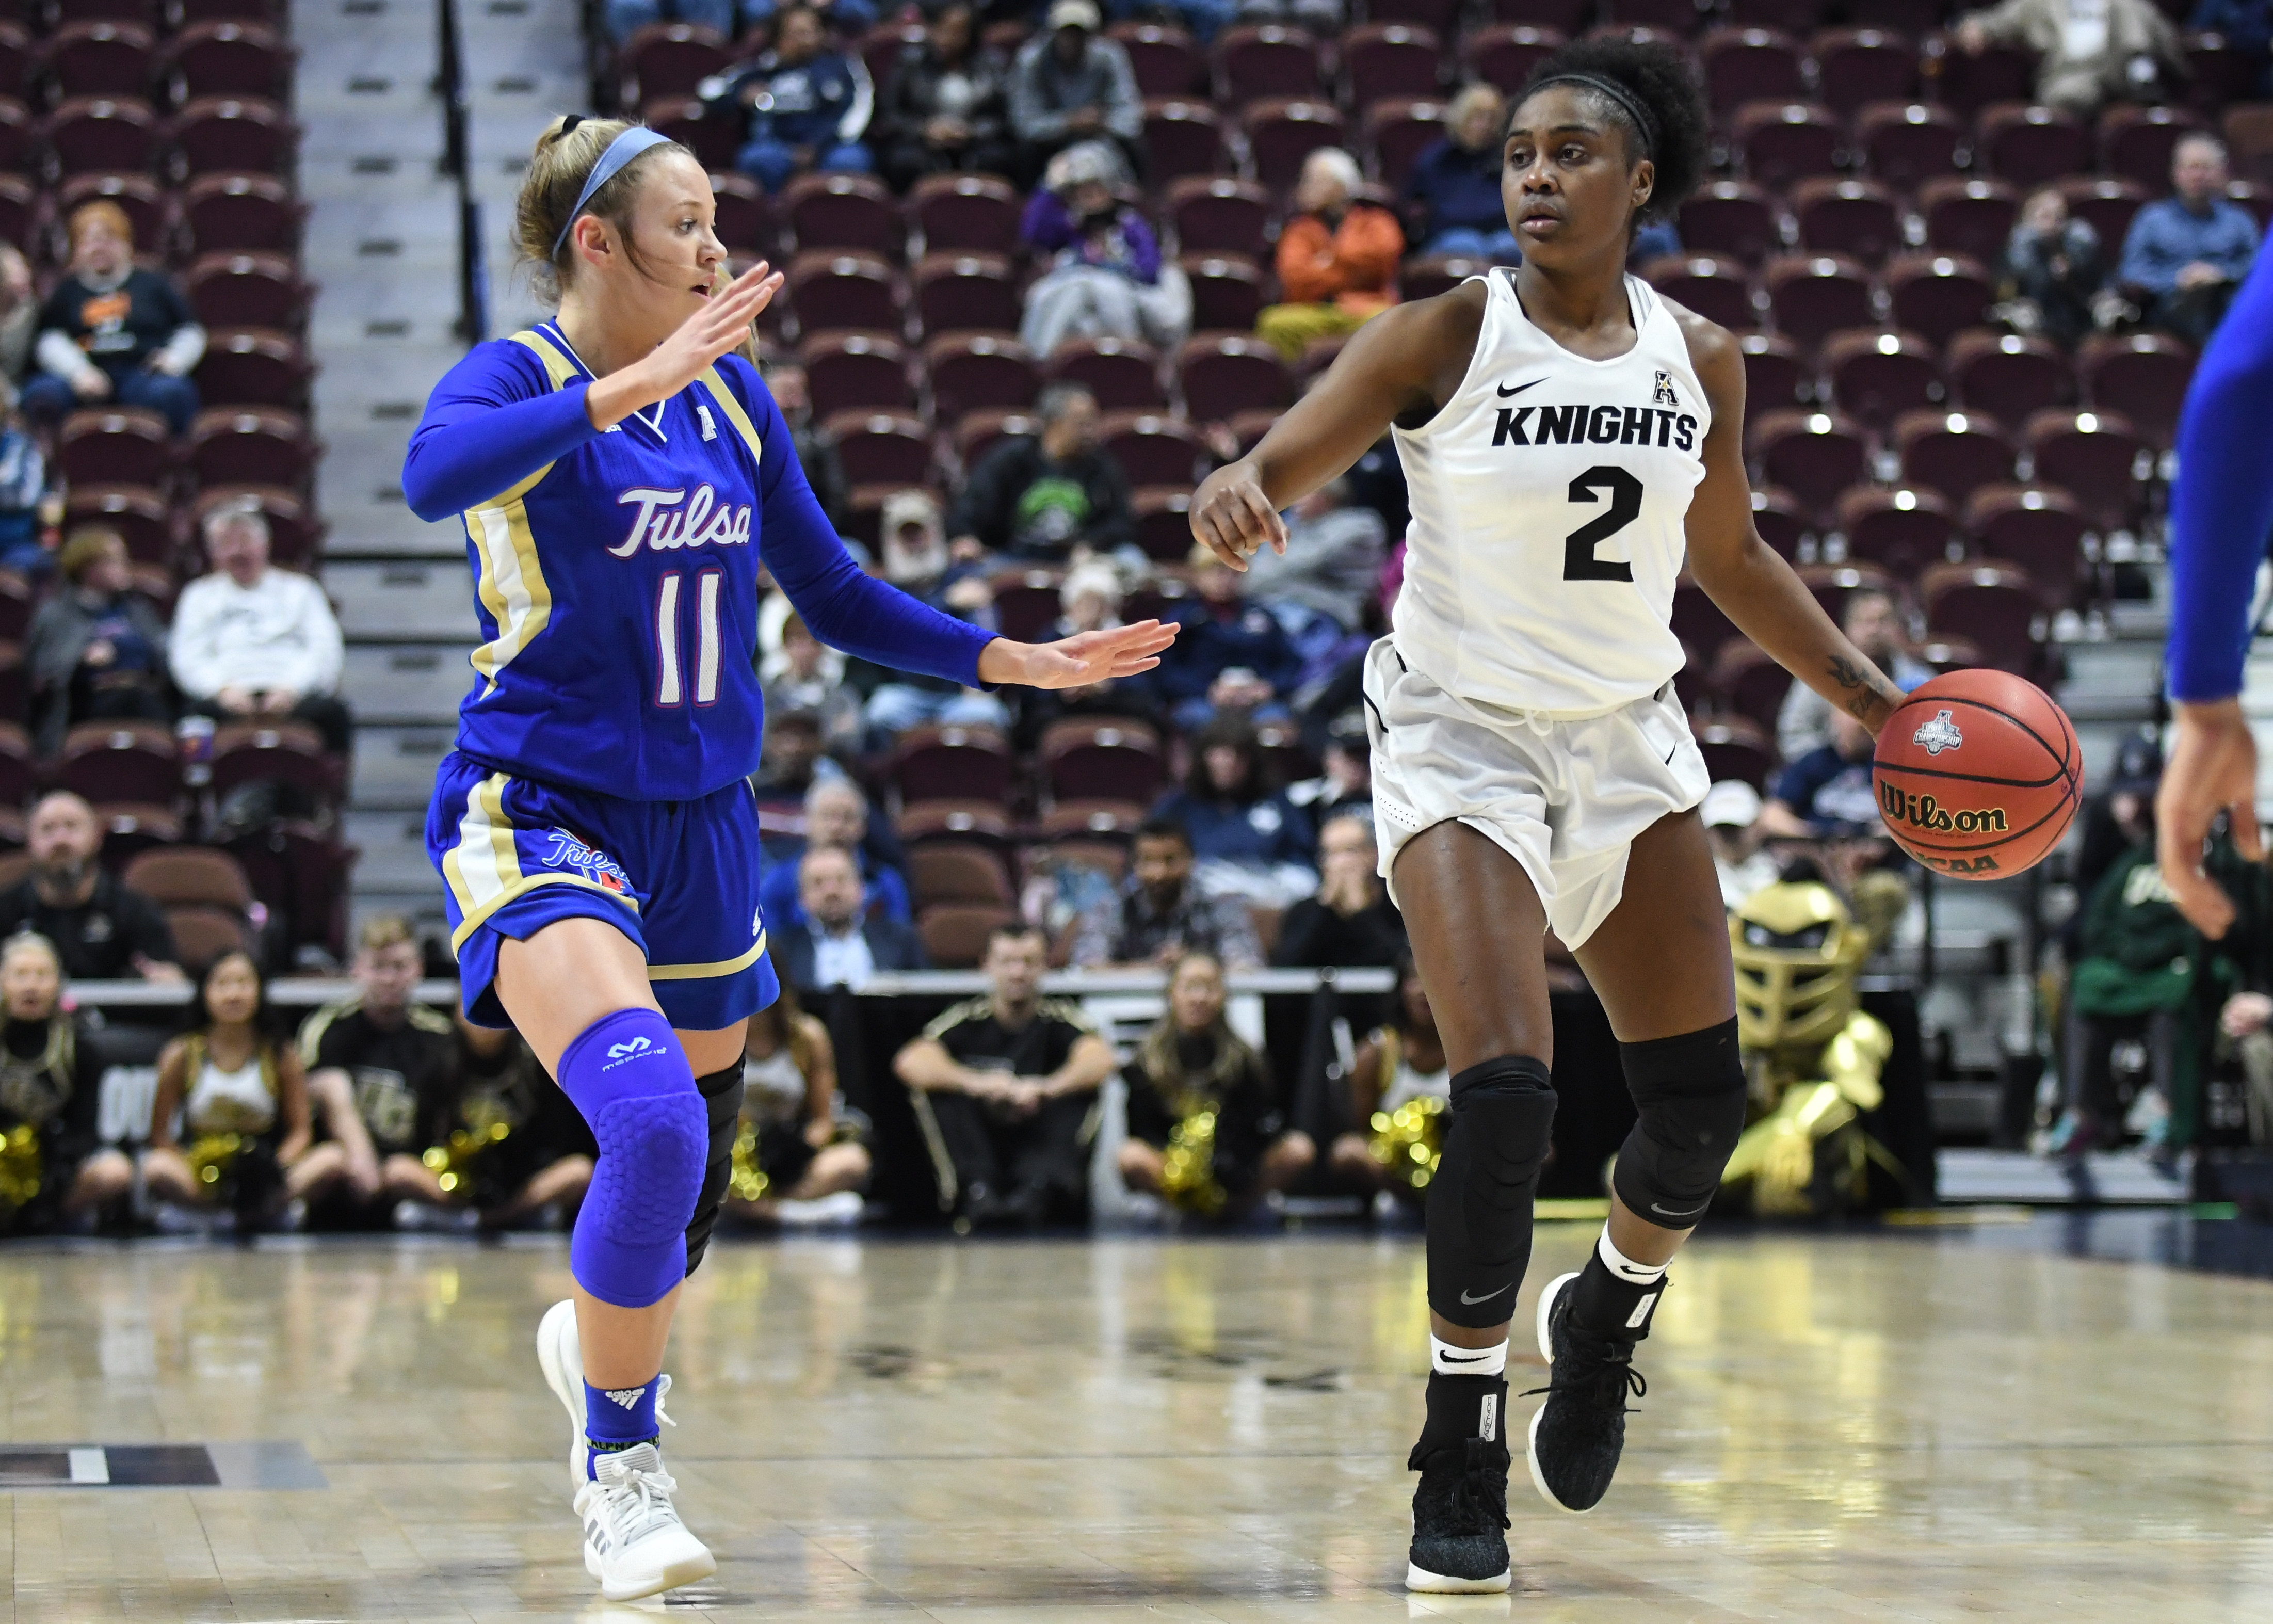 COLLEGE BASKETBALL: MAR 09 American Athletic Conference Women's Championship - Tulsa v UCF